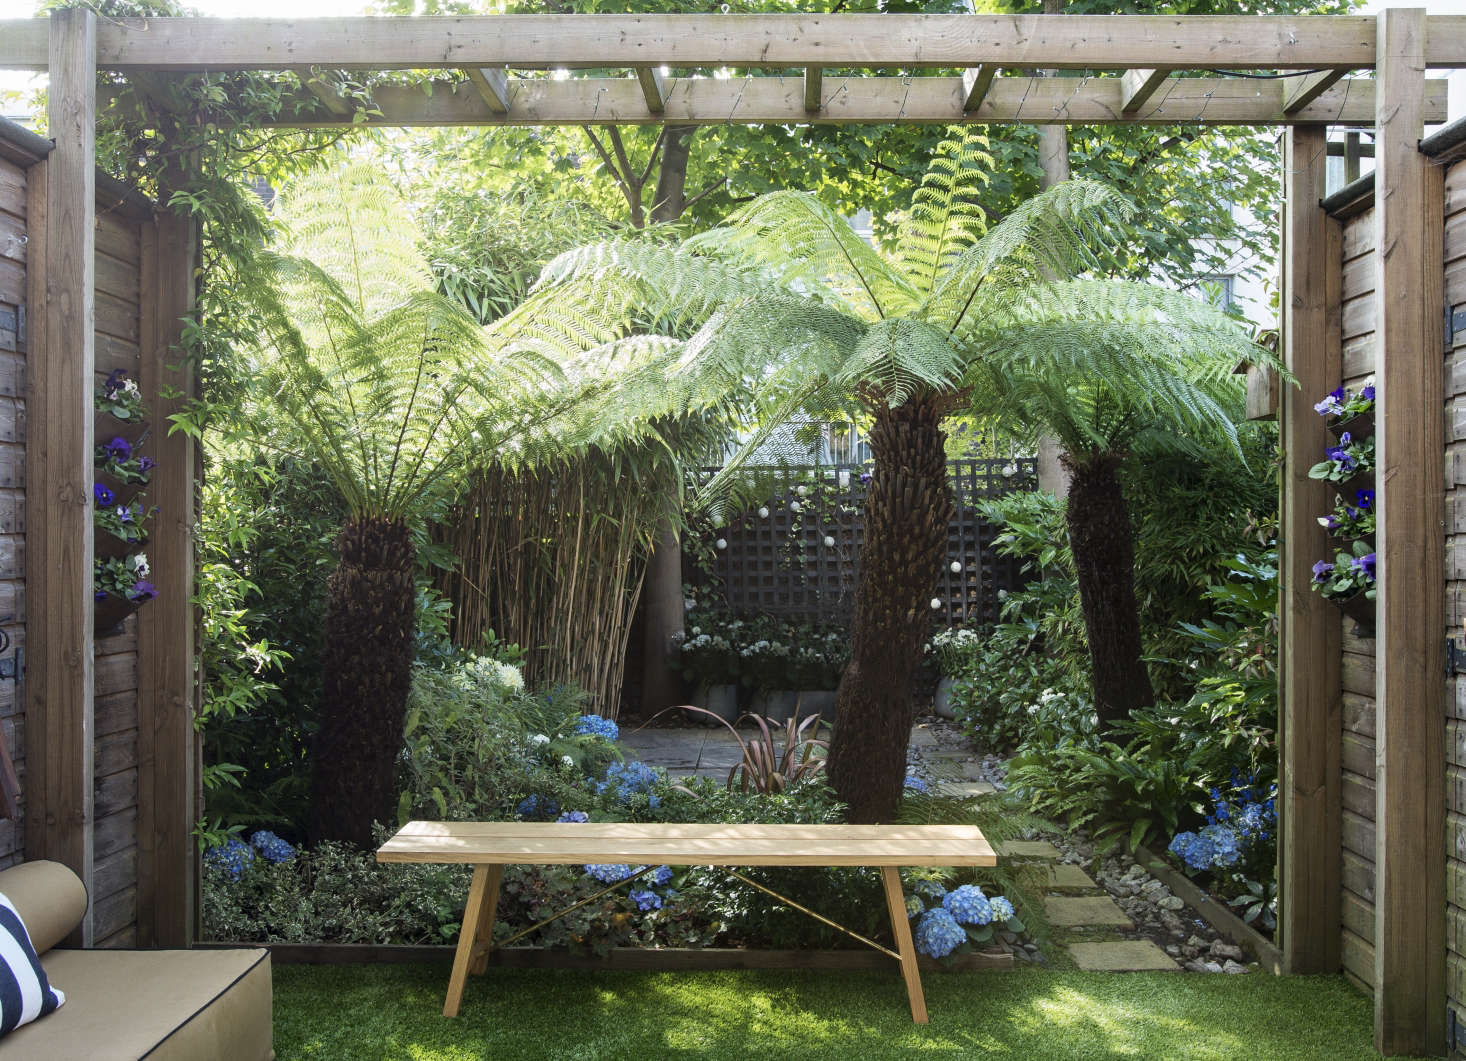 Design Basics 5 Steps To Create An Outdoor Room On A Budget Gardenista